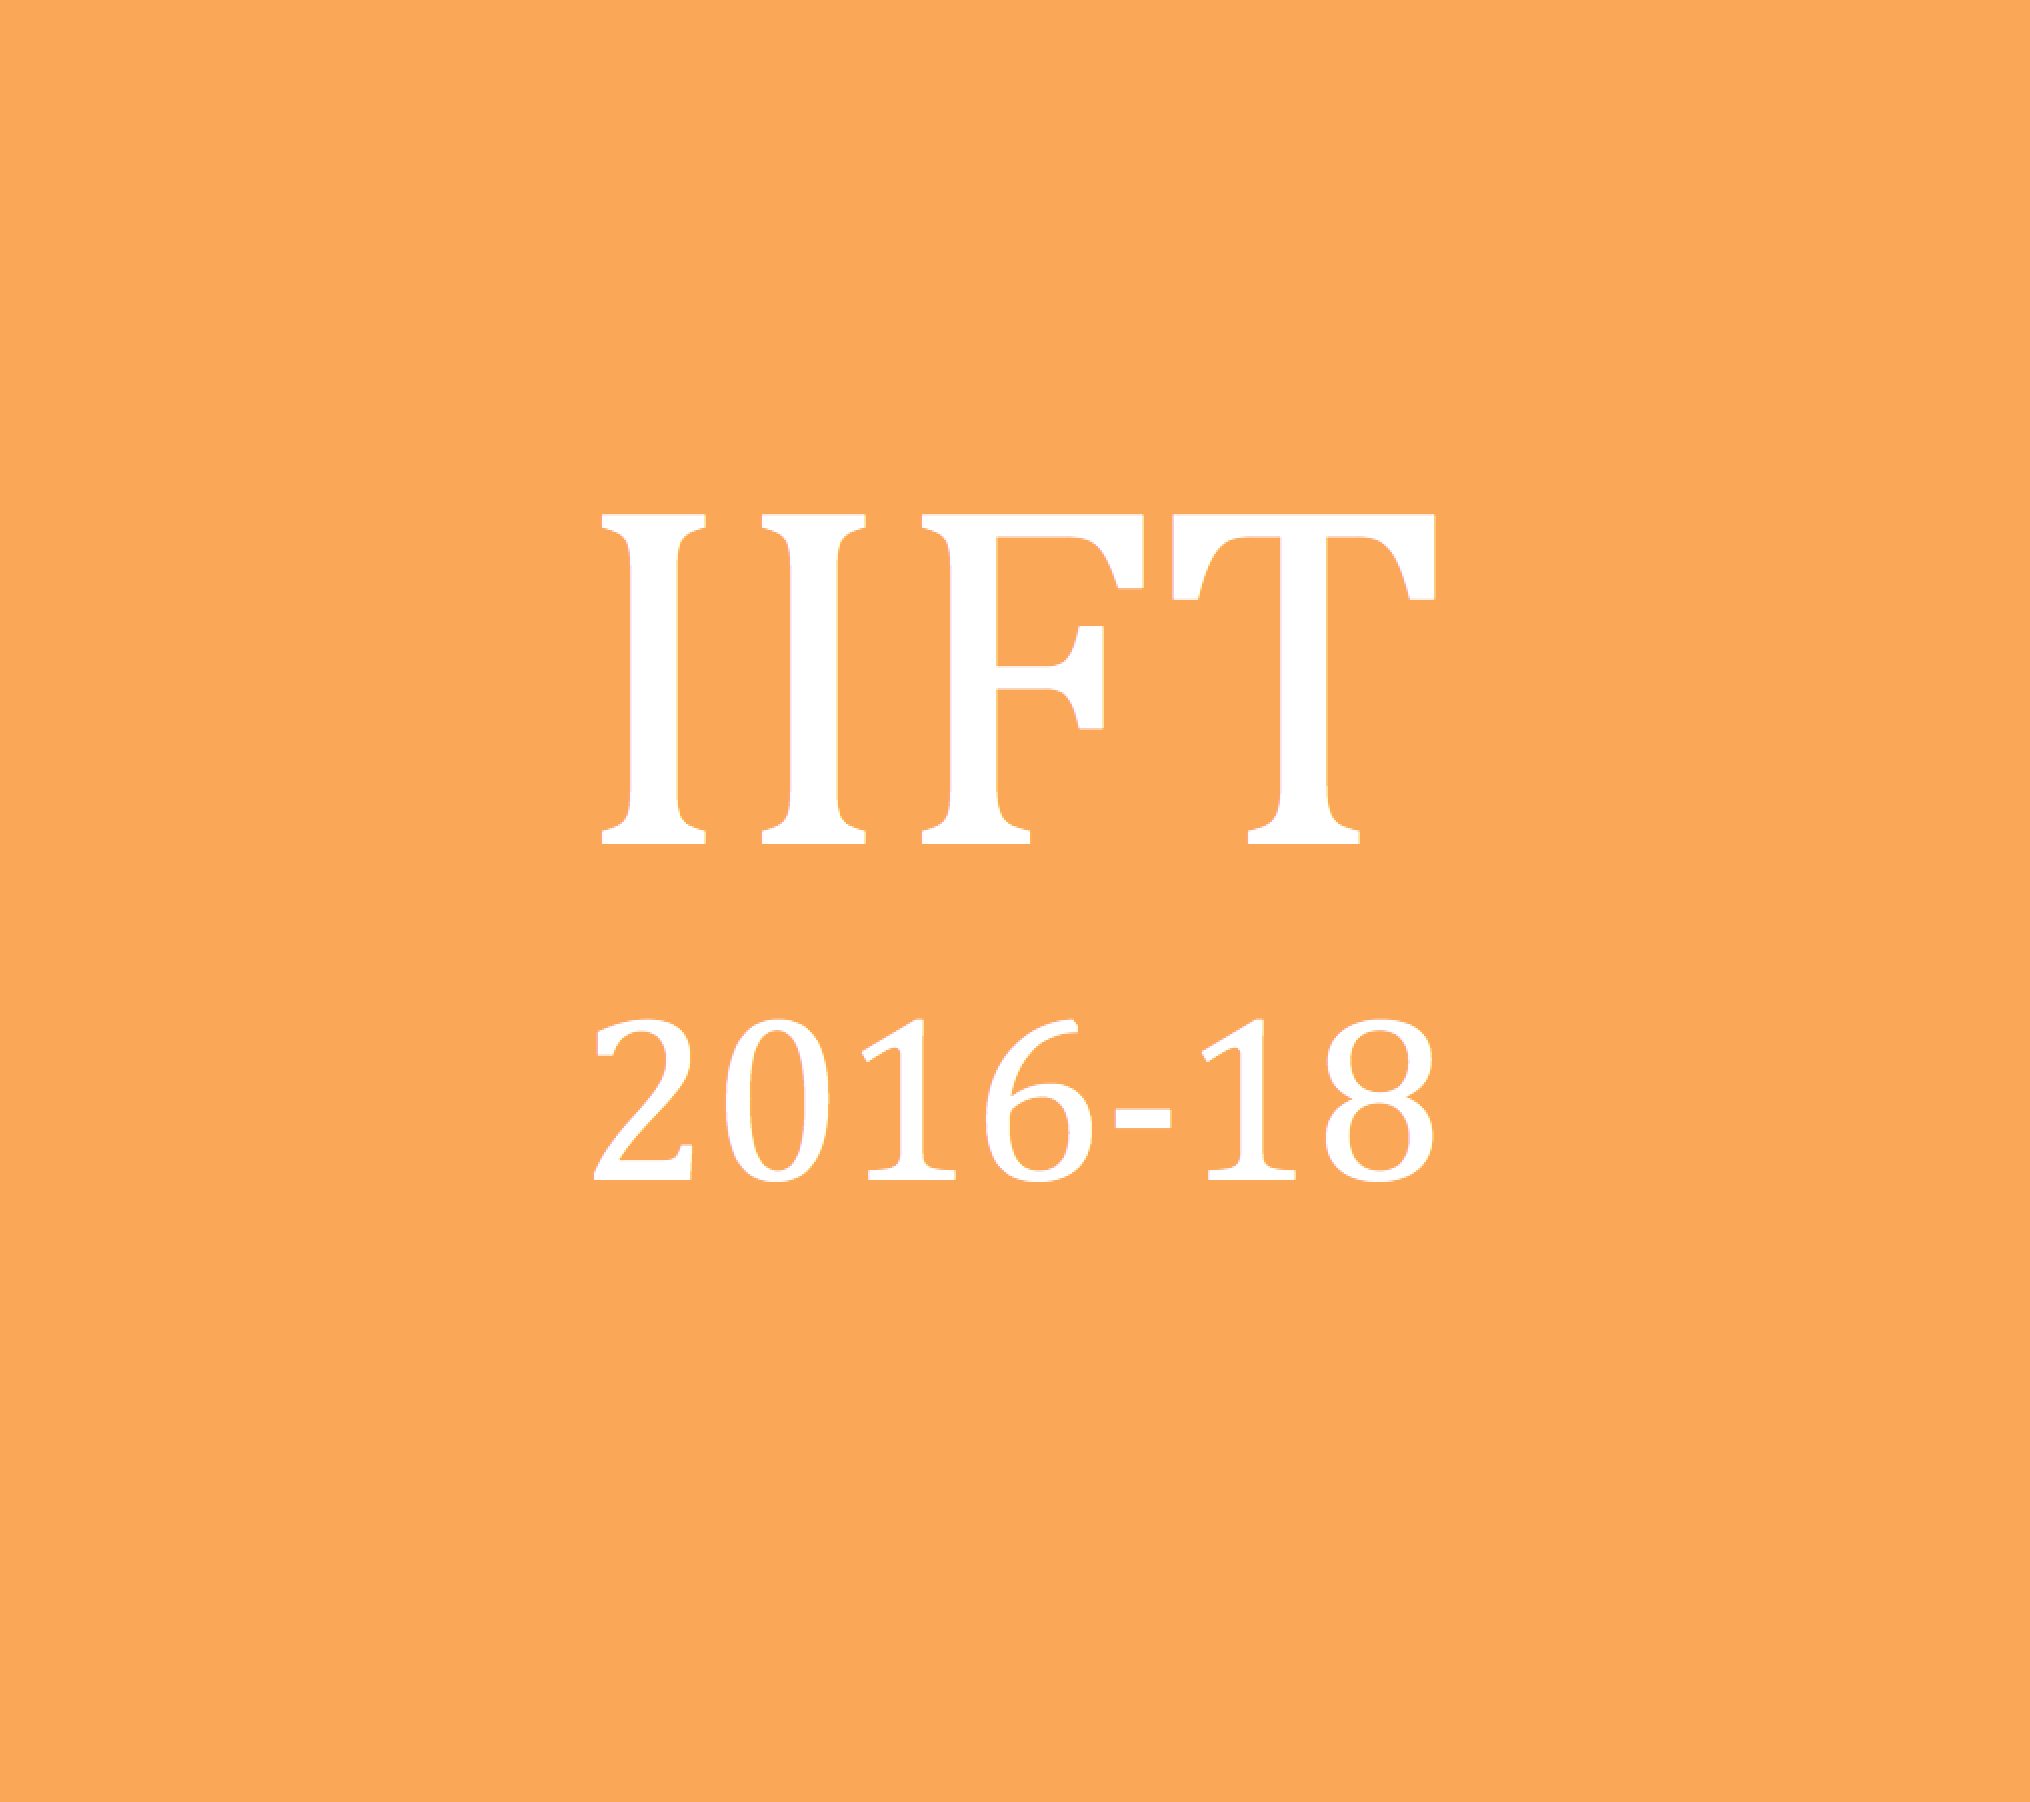 IIFT 2016-18 Analysis: My take